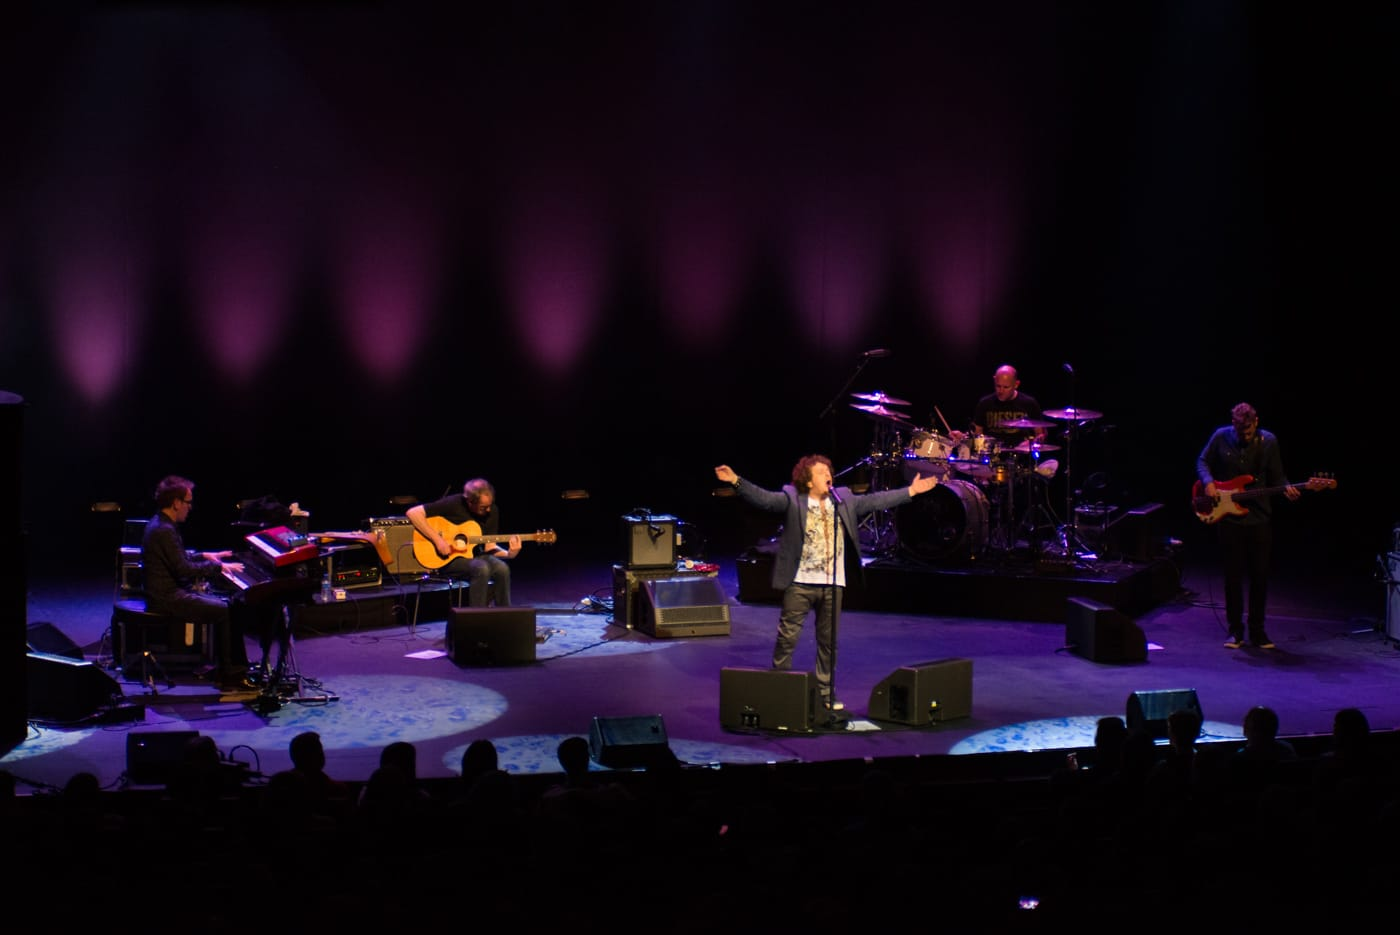 Leo Sayer at Bord Gais Energy Theatre by Sean Smyth (16-10-15) (45 of 129)